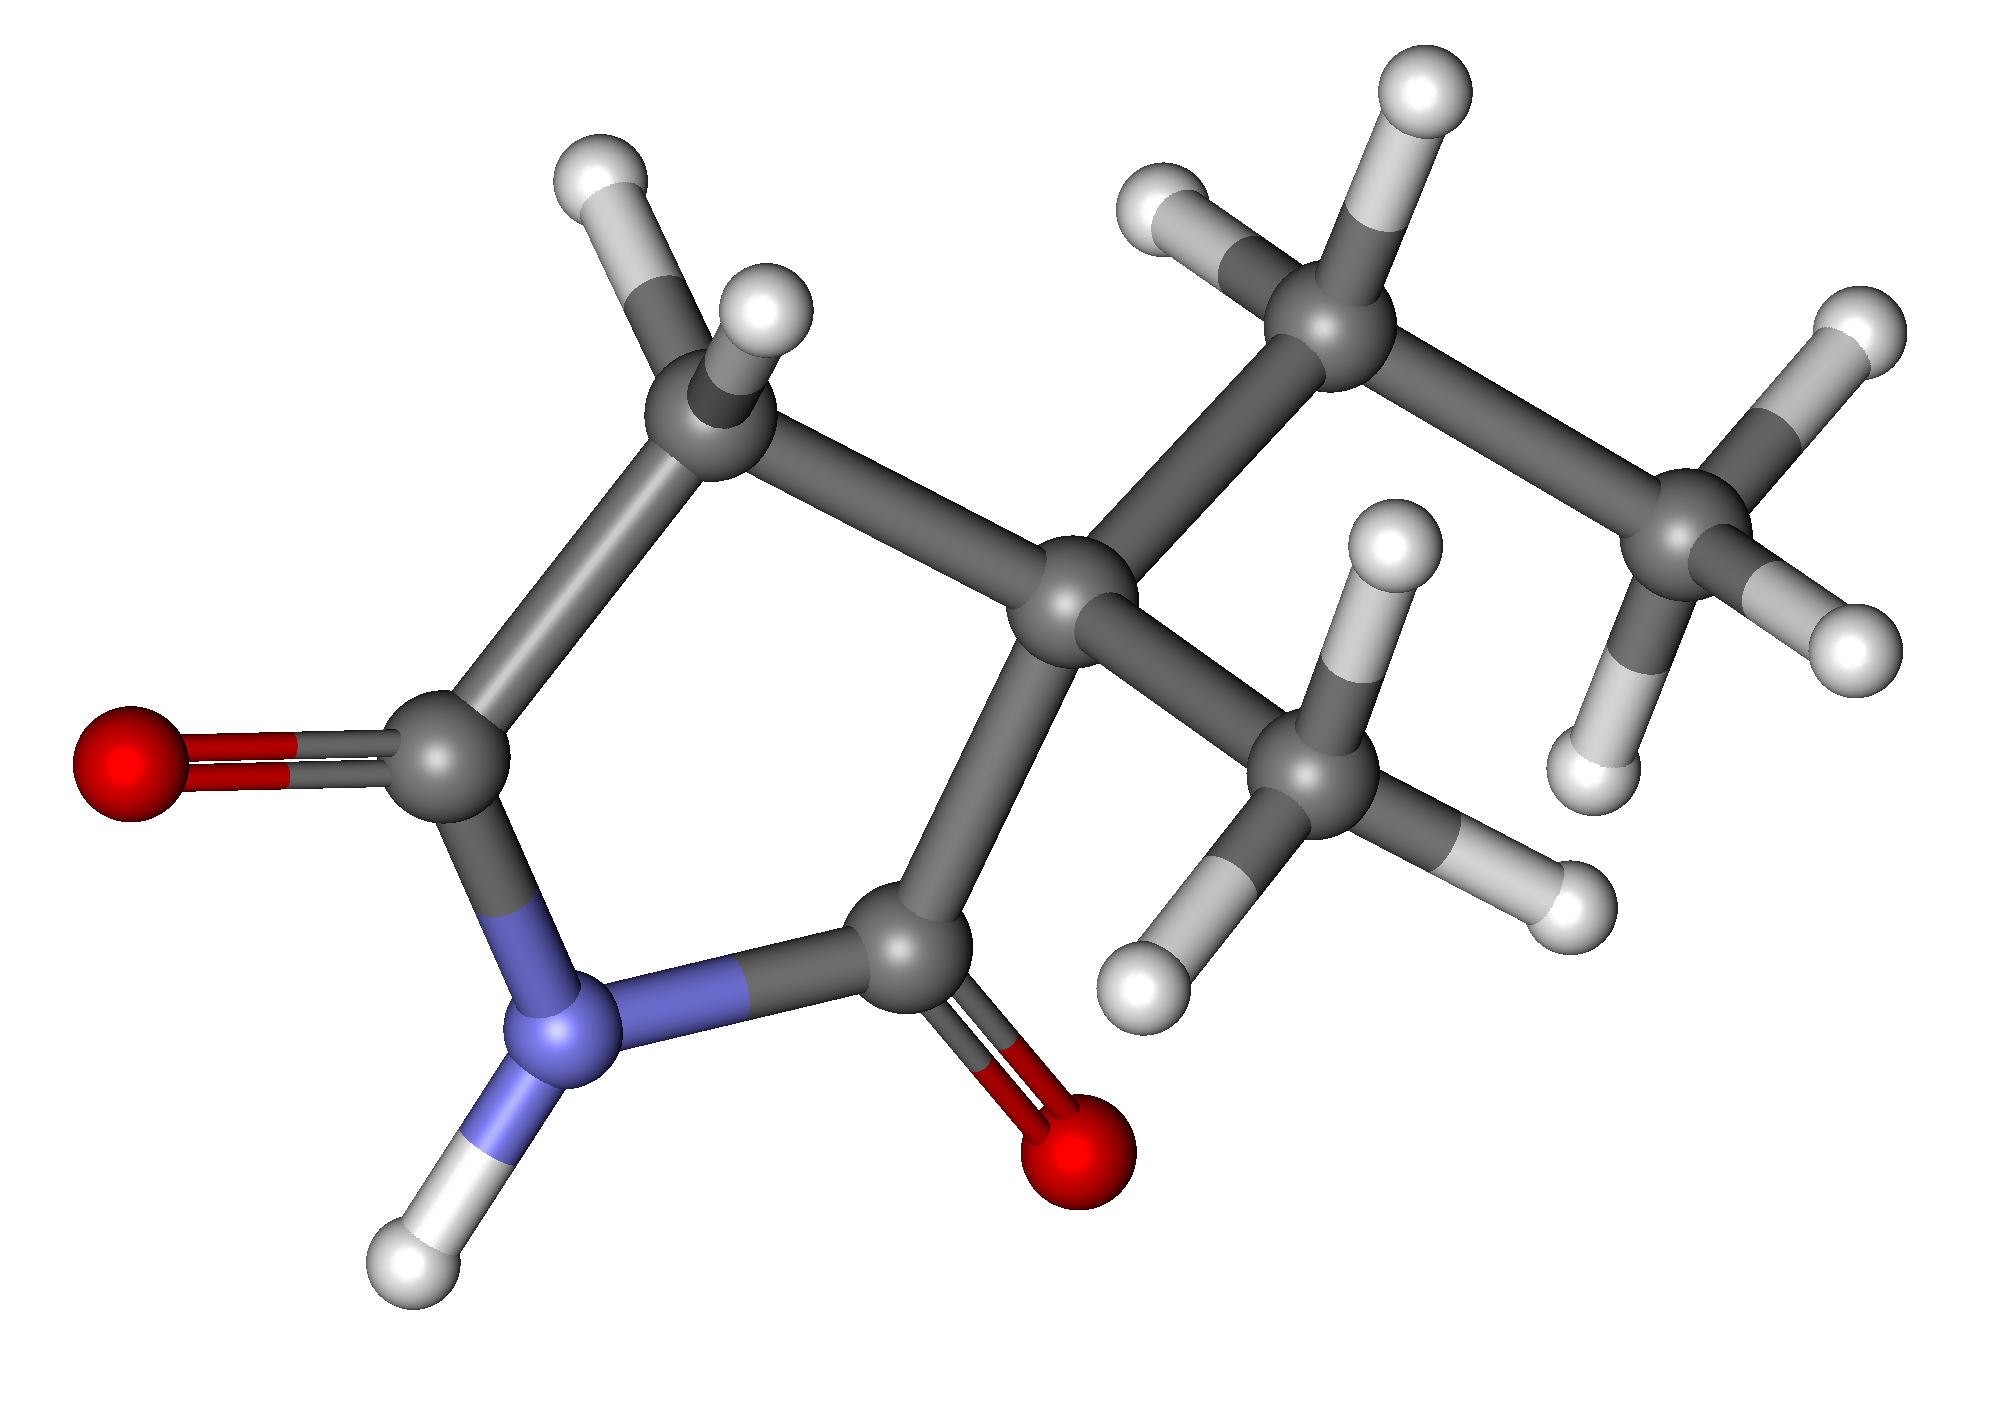 File:Ethosuximide ball-and-stick.png - Wikimedia Commons